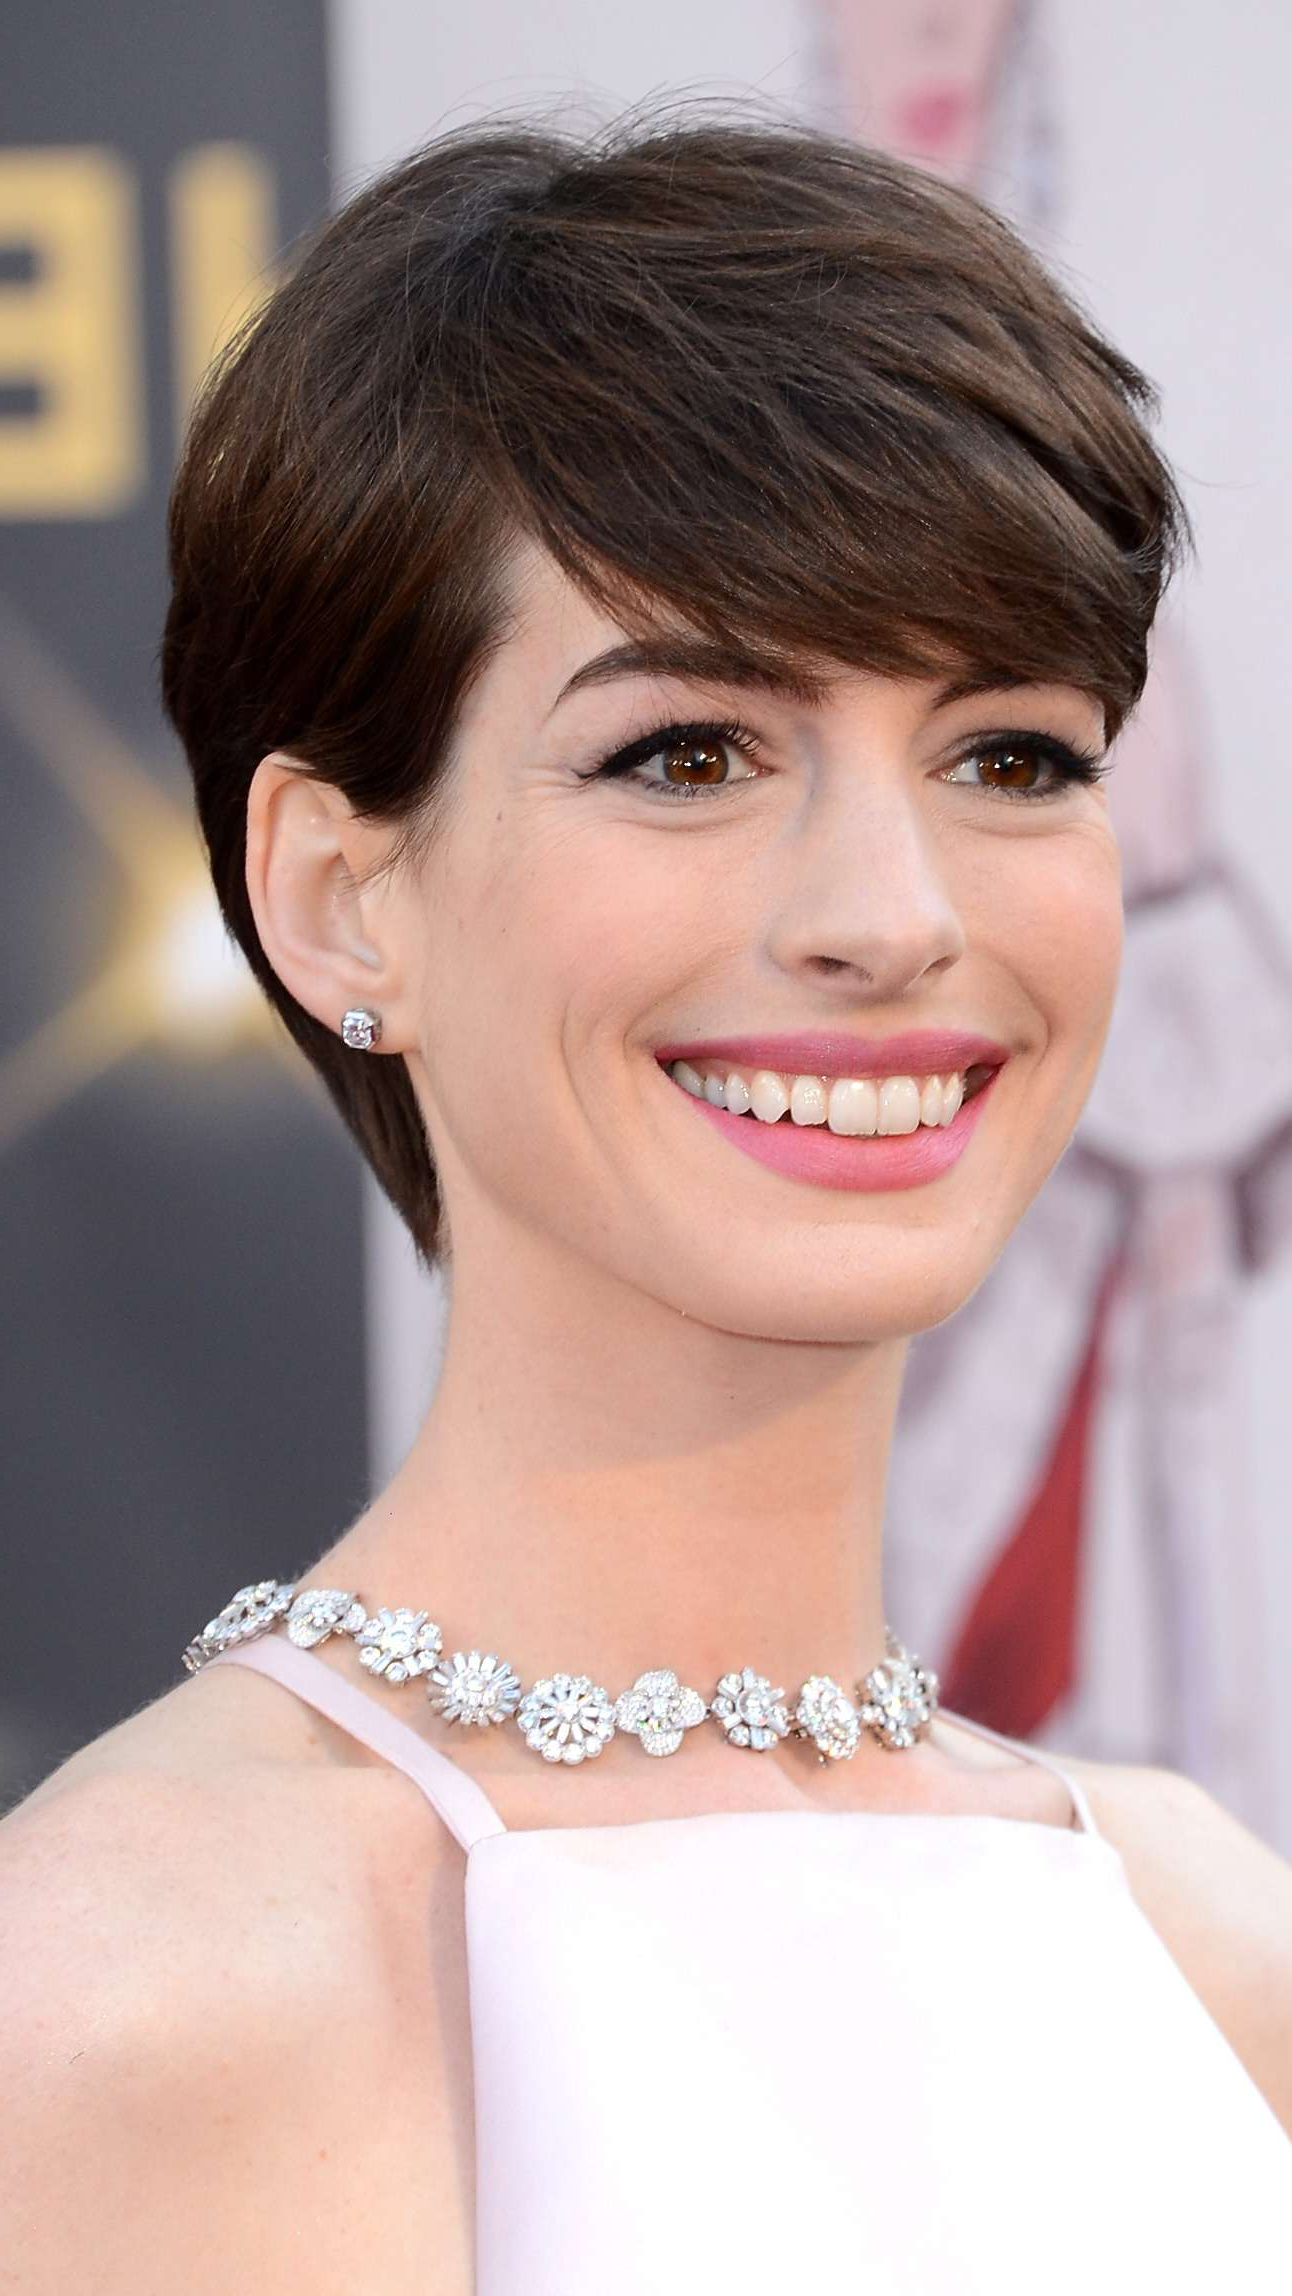 22 Inspiring Short Haircuts For Every Face Shape In Elongated Choppy Pixie Haircuts With Tapered Back (View 4 of 20)